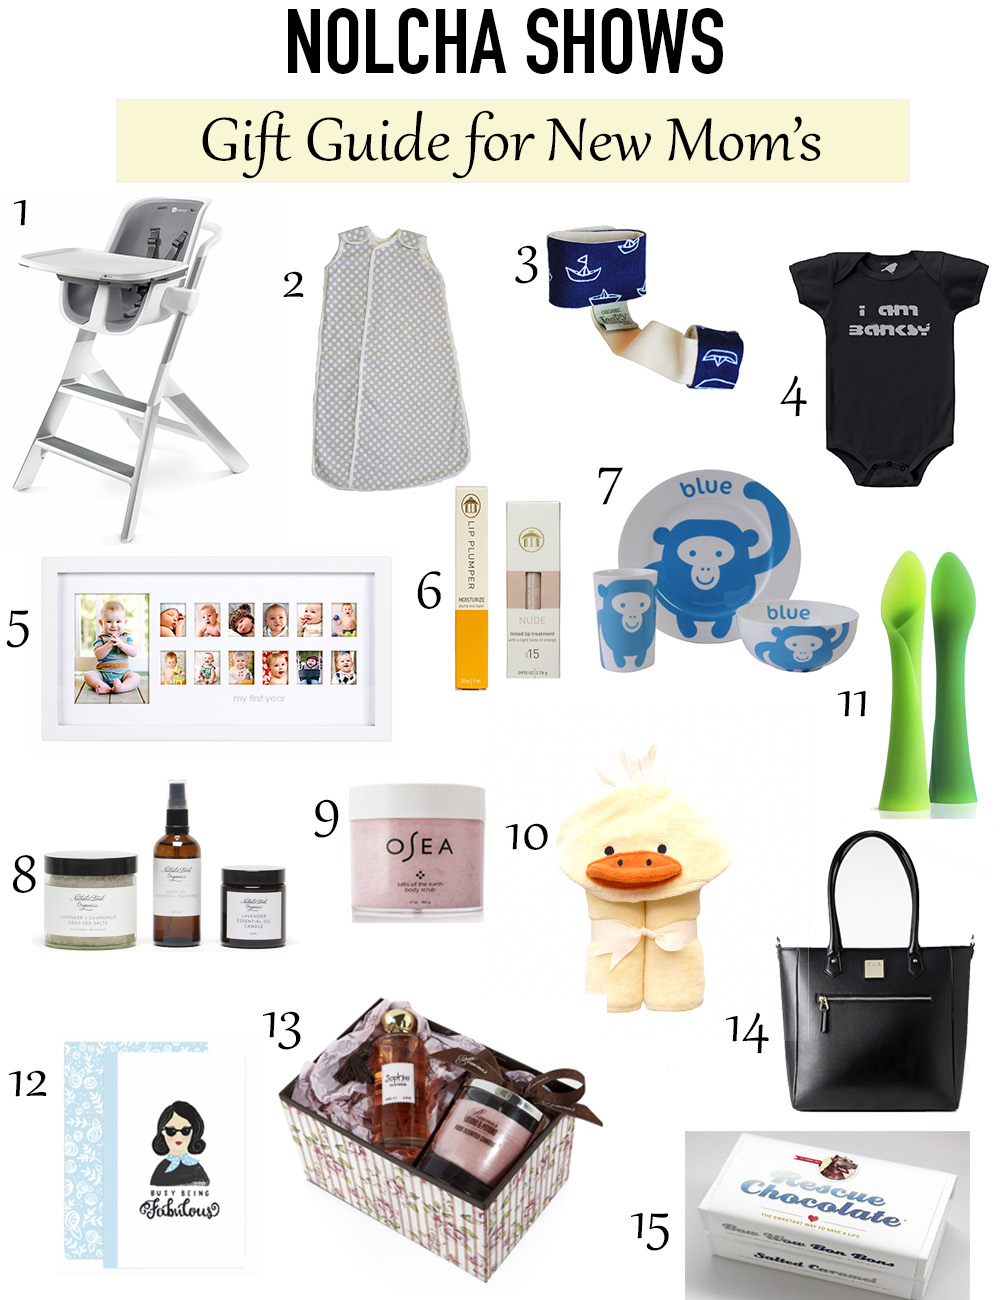 mmh-gift-guide-for-new-moms